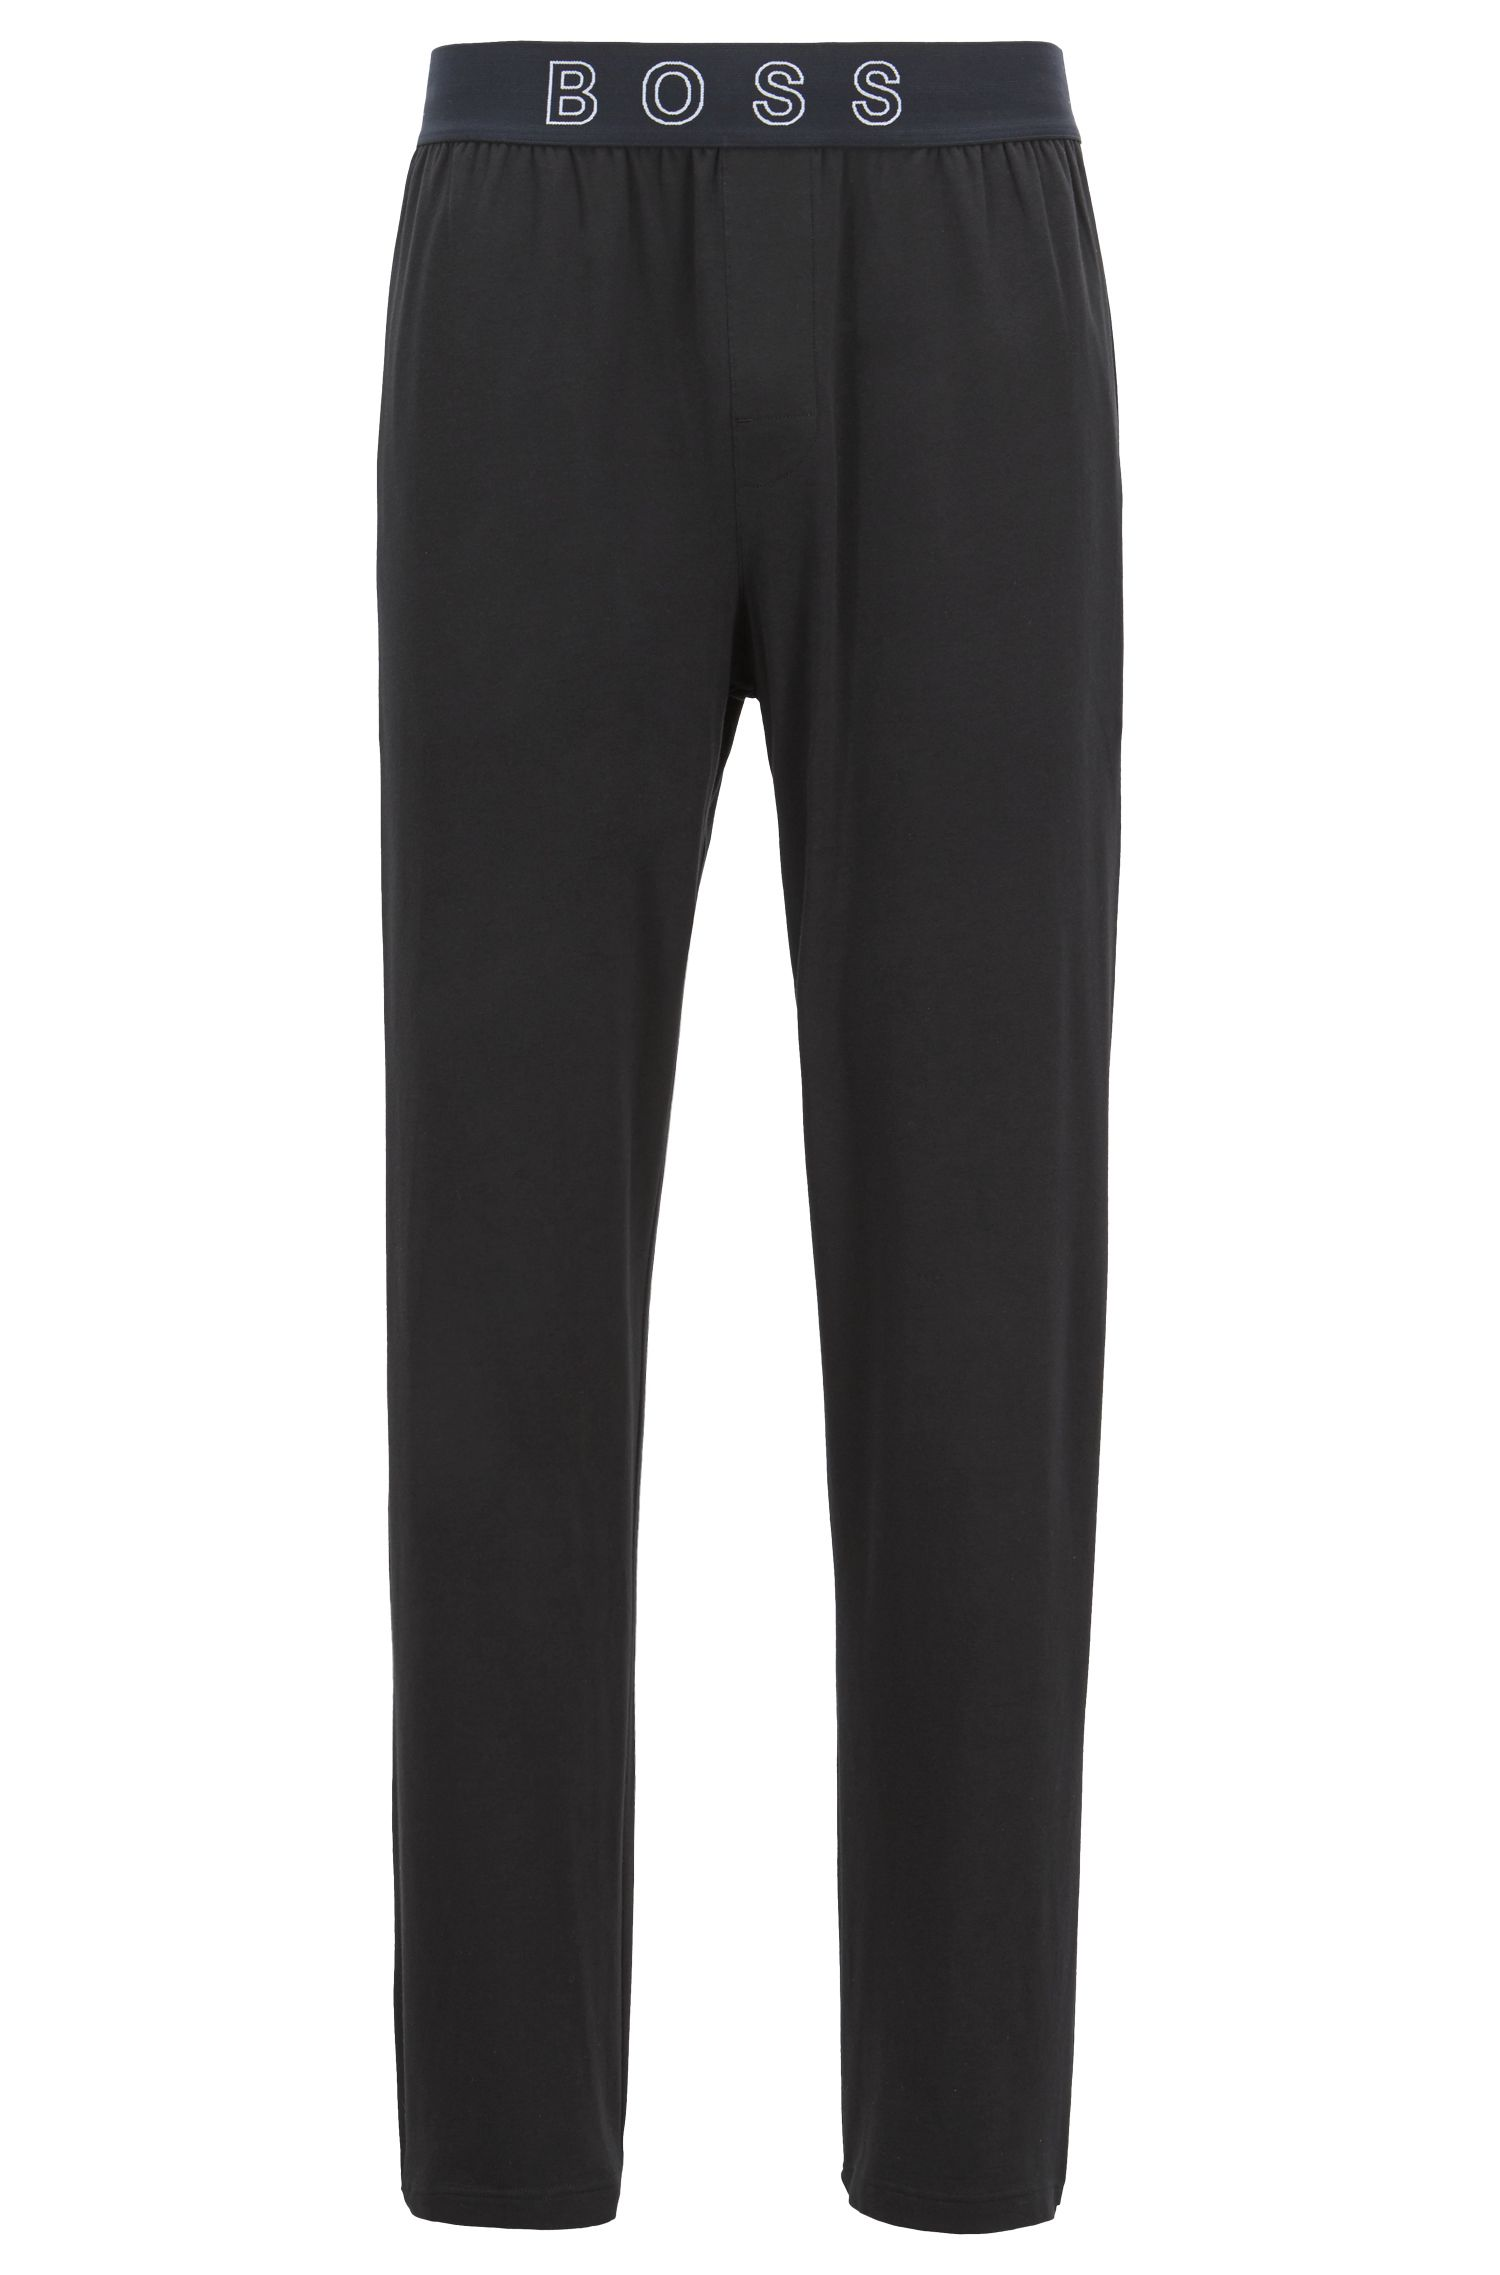 Pajama pants in stretch cotton with logo waistband, Black